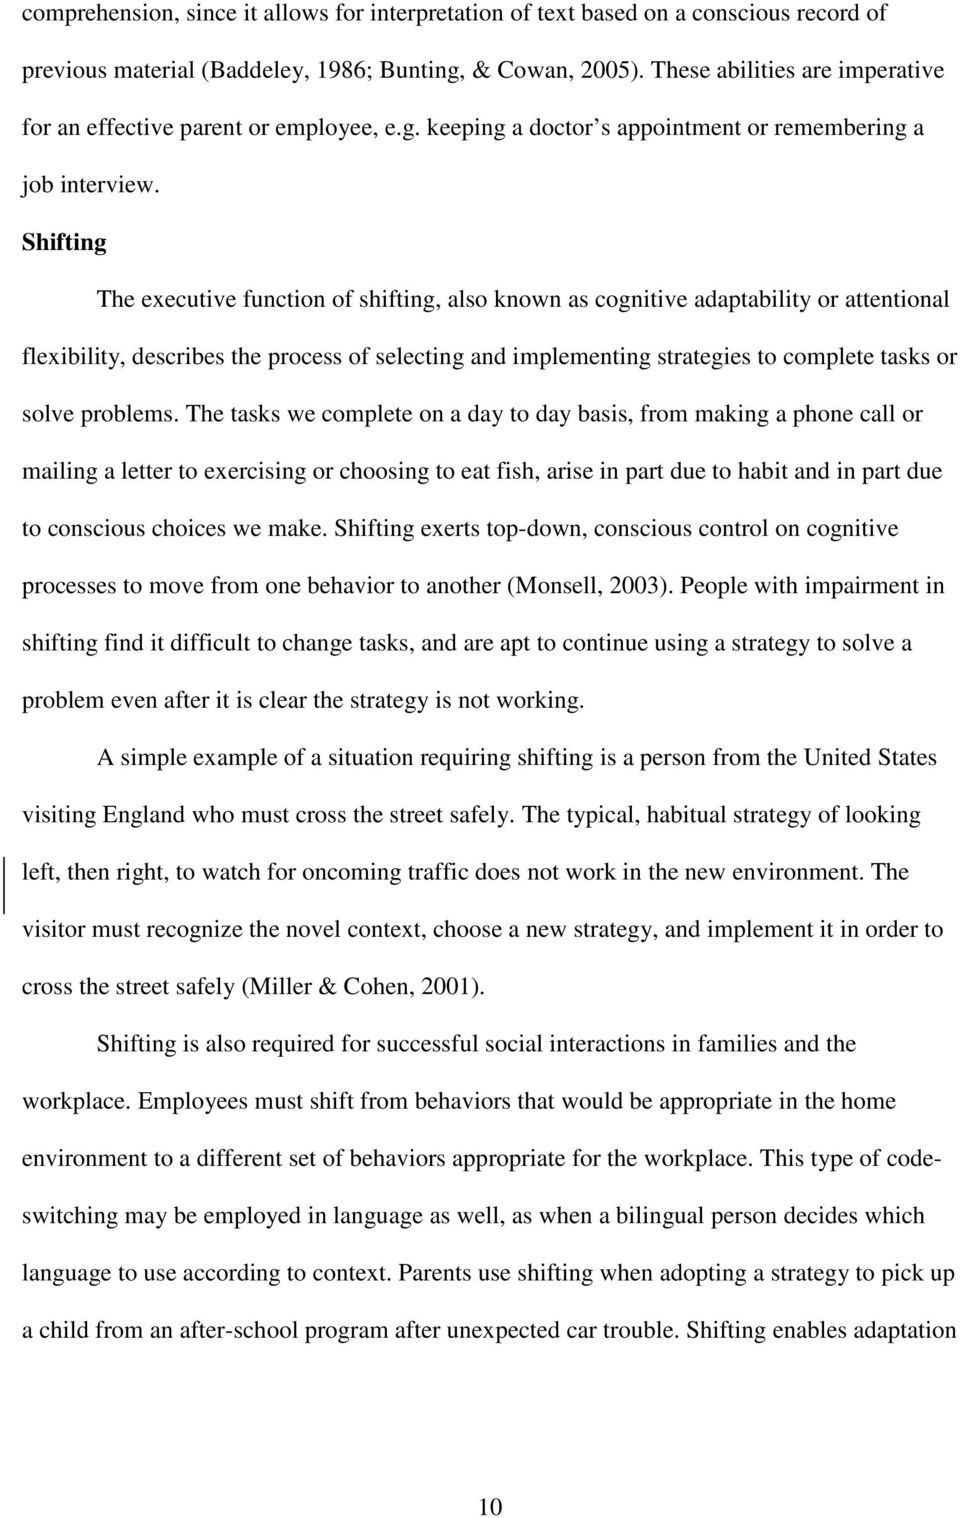 Shifting The executive function of shifting, also known as cognitive adaptability or attentional flexibility, describes the process of selecting and implementing strategies to complete tasks or solve